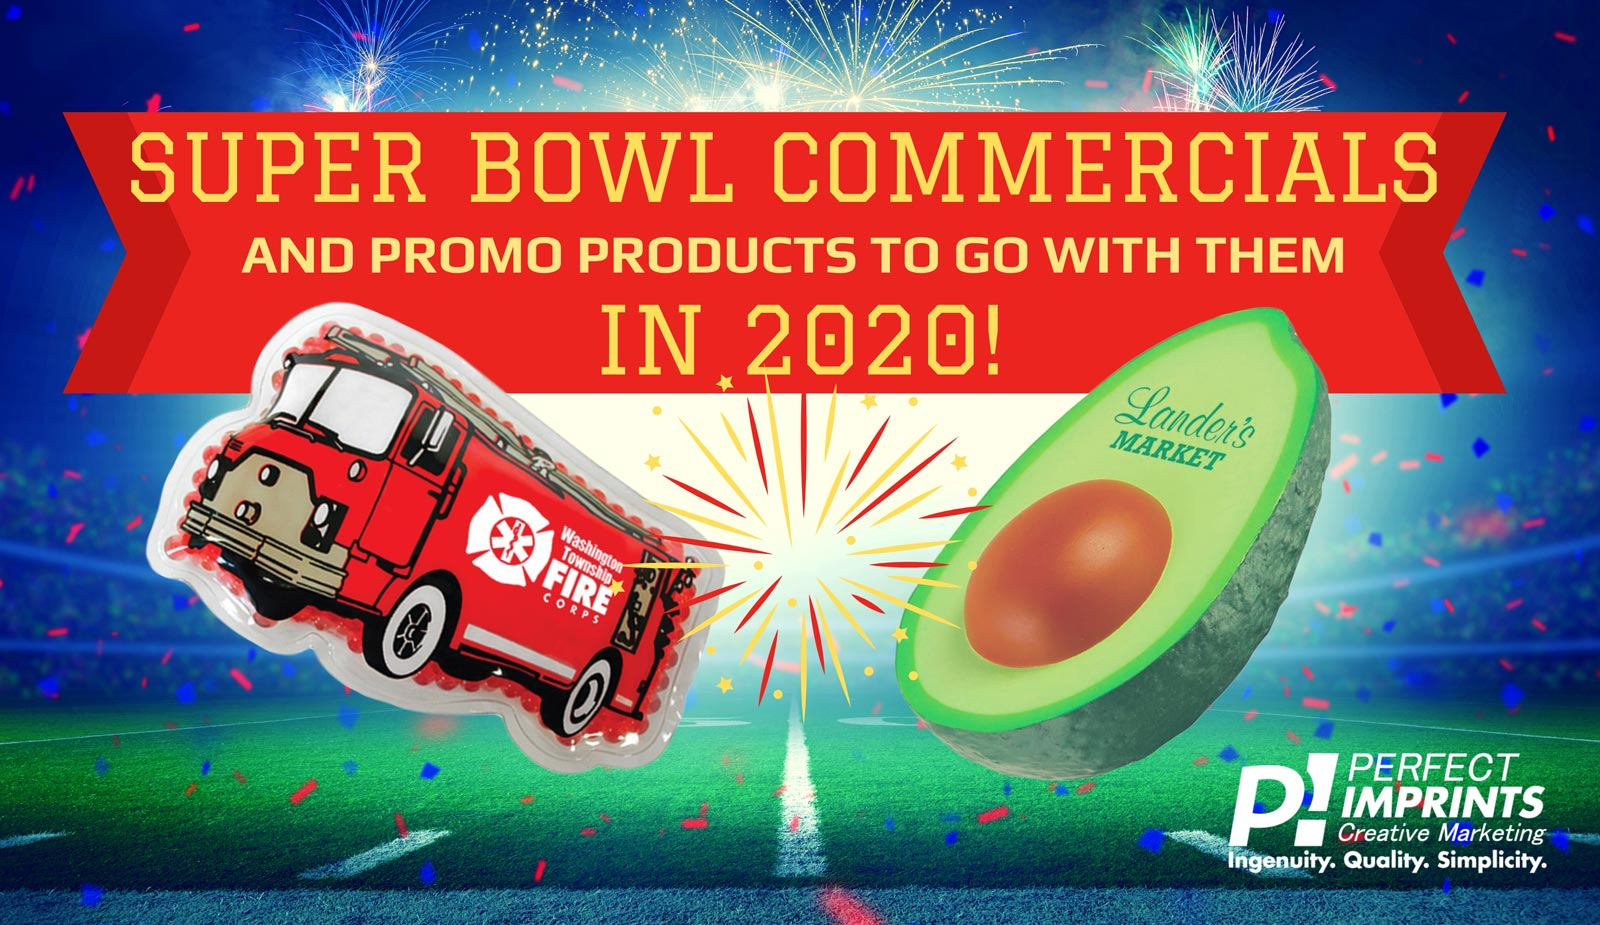 Promotional Items for the Super Bowl 2020